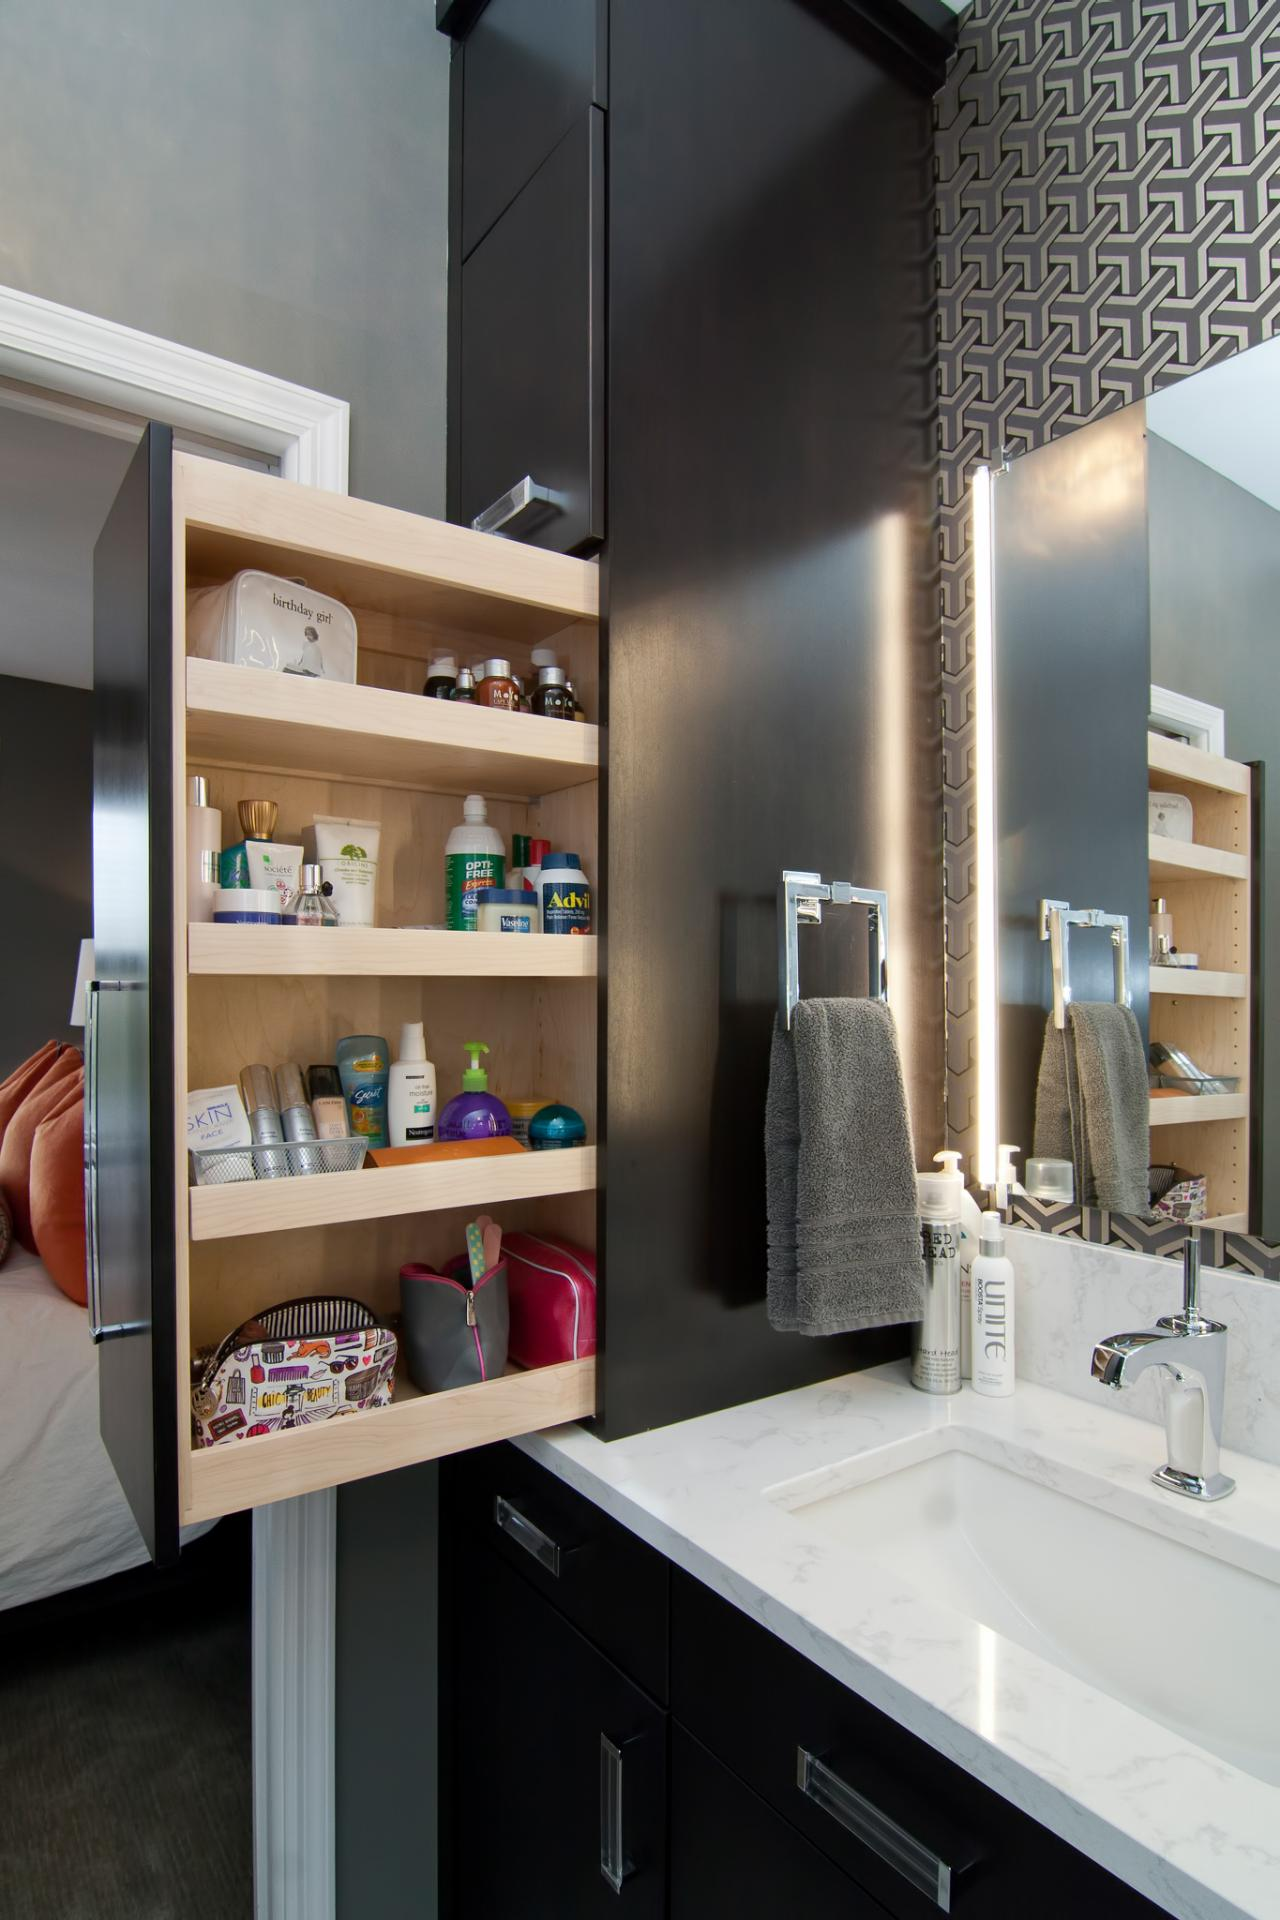 Small space bathroom storage ideas diy network blog - Bathroom mirror with hidden storage ...